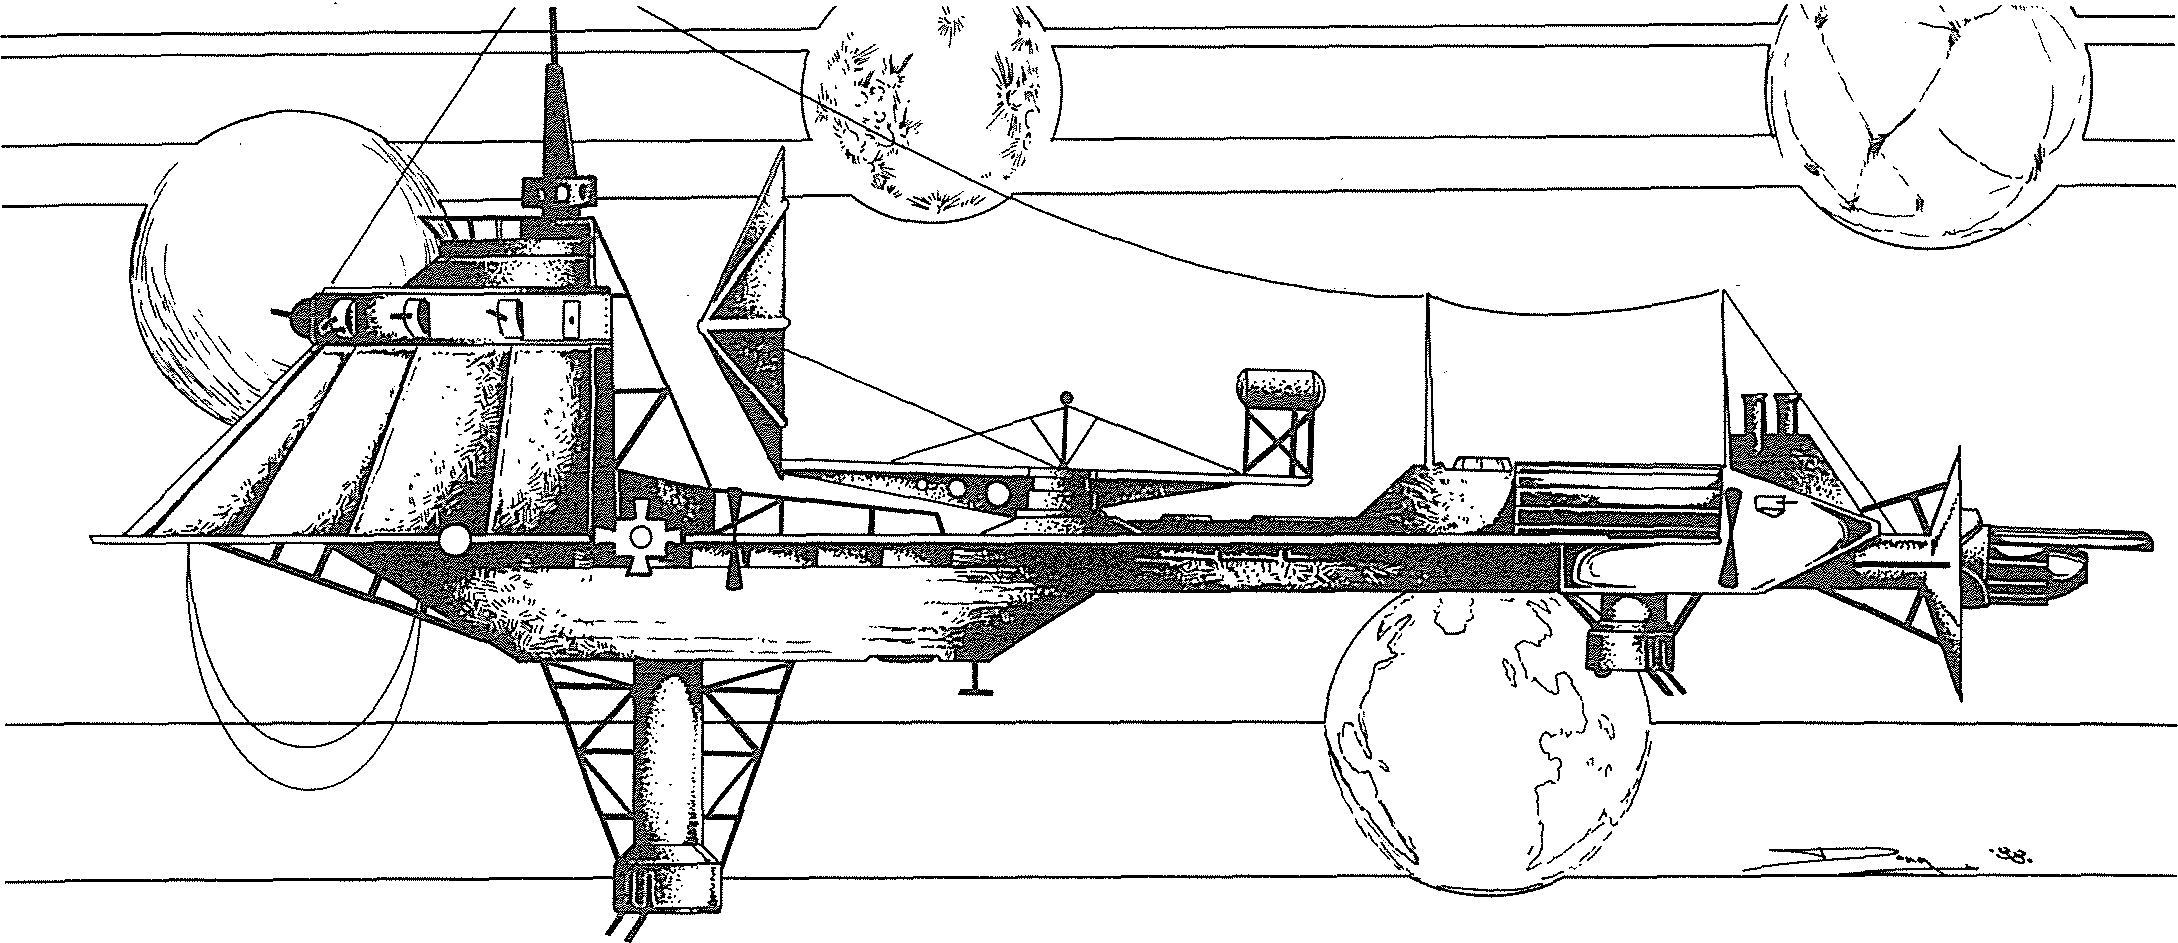 image of https://space1889.dssr.ch/img/ether.png